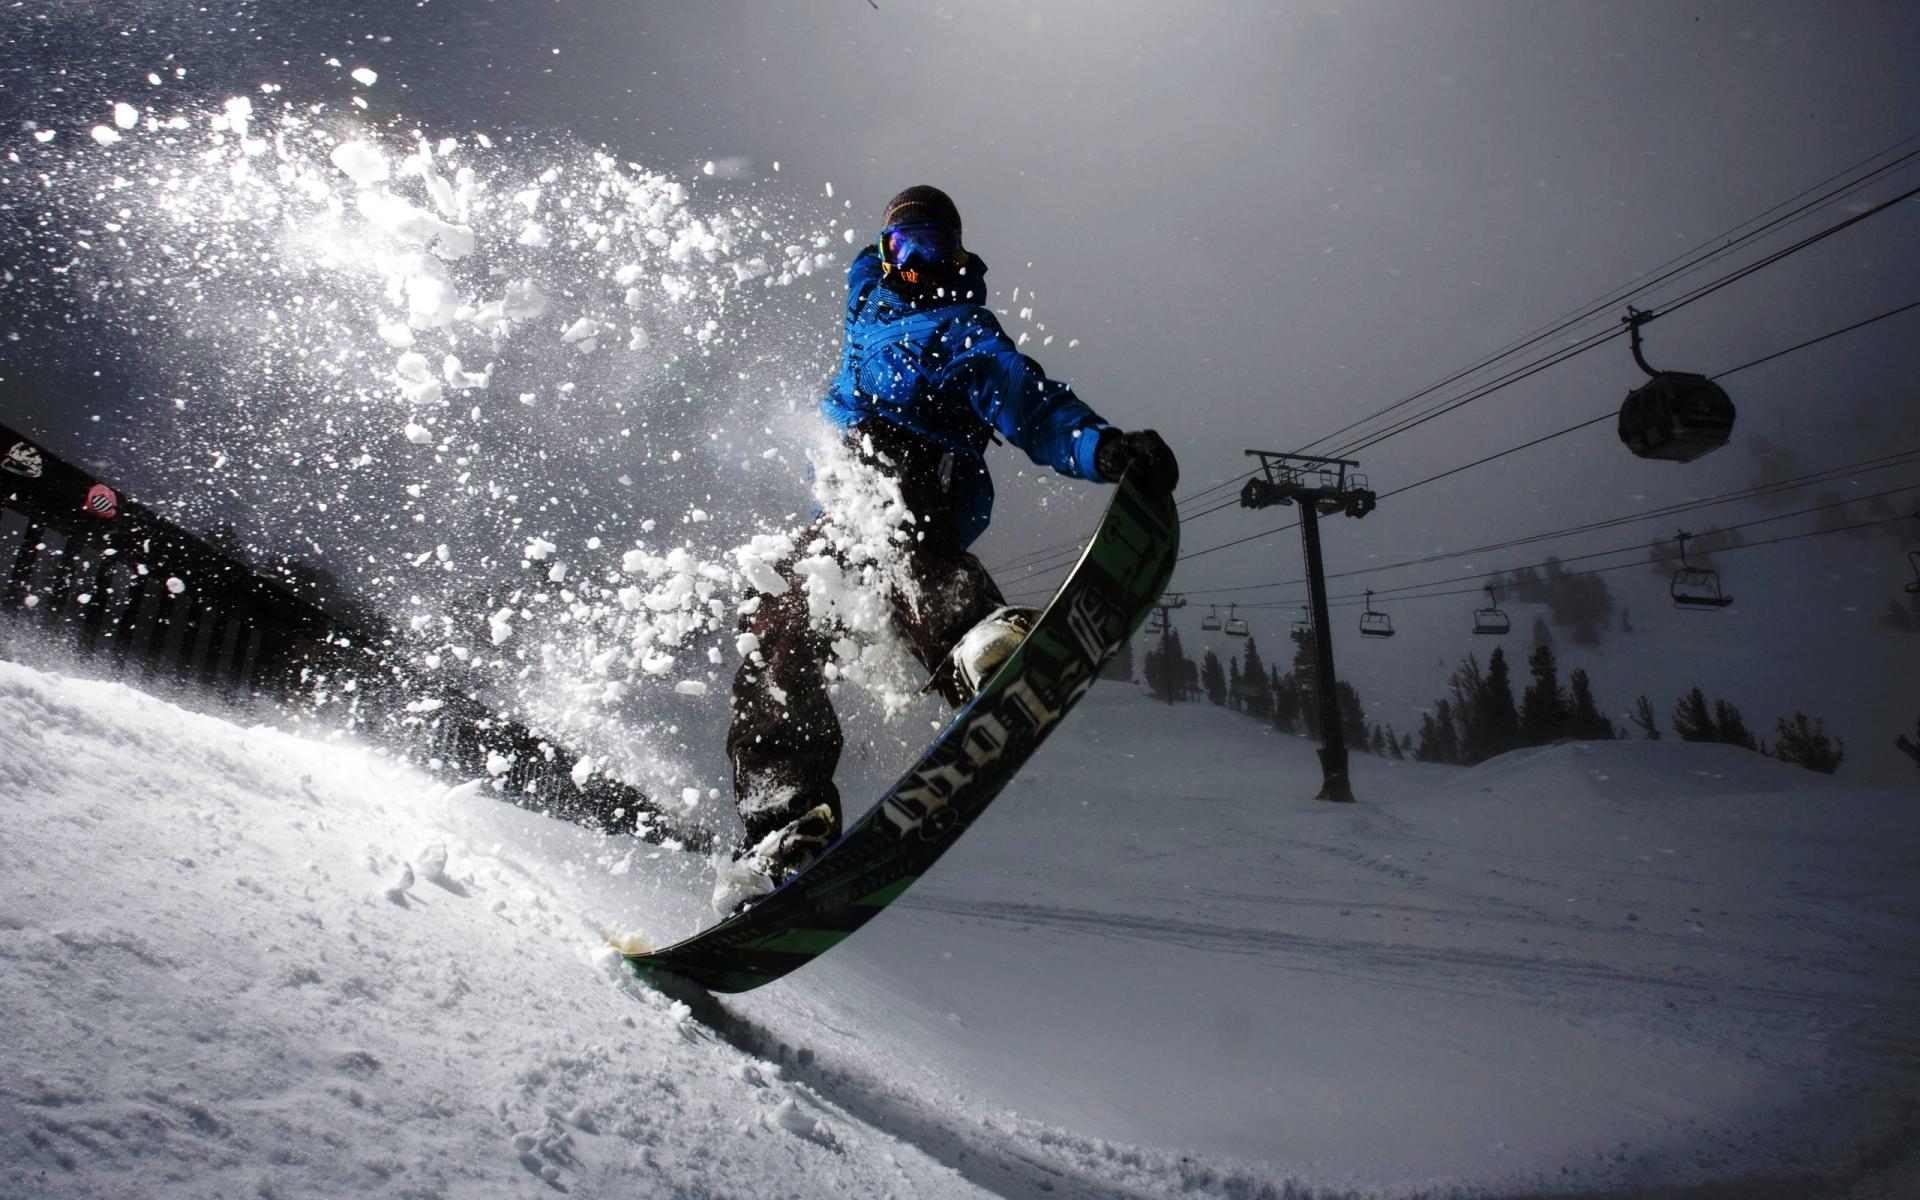 Related wallpaper for Snowboarding